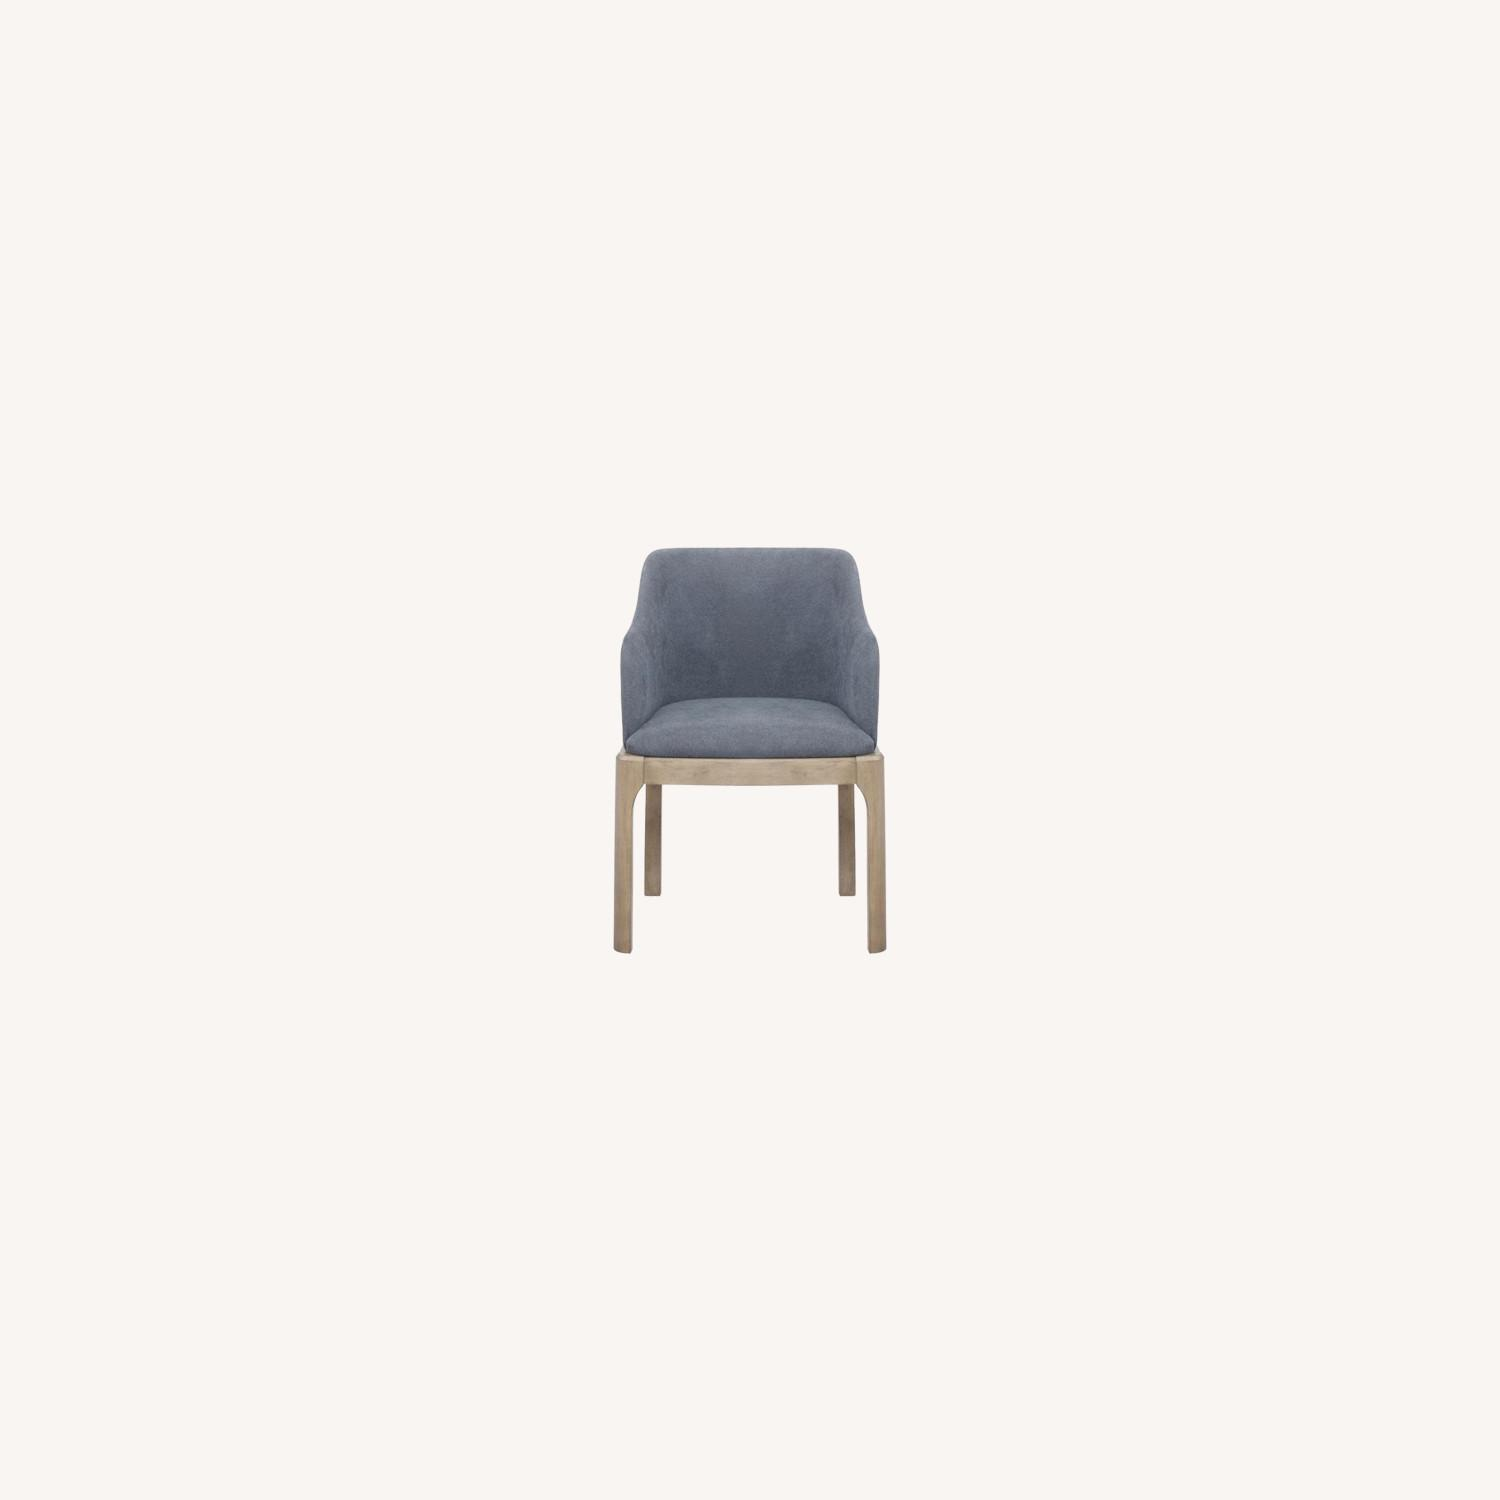 Modern Danish Style Arm Chair In Denim Blue - image-4